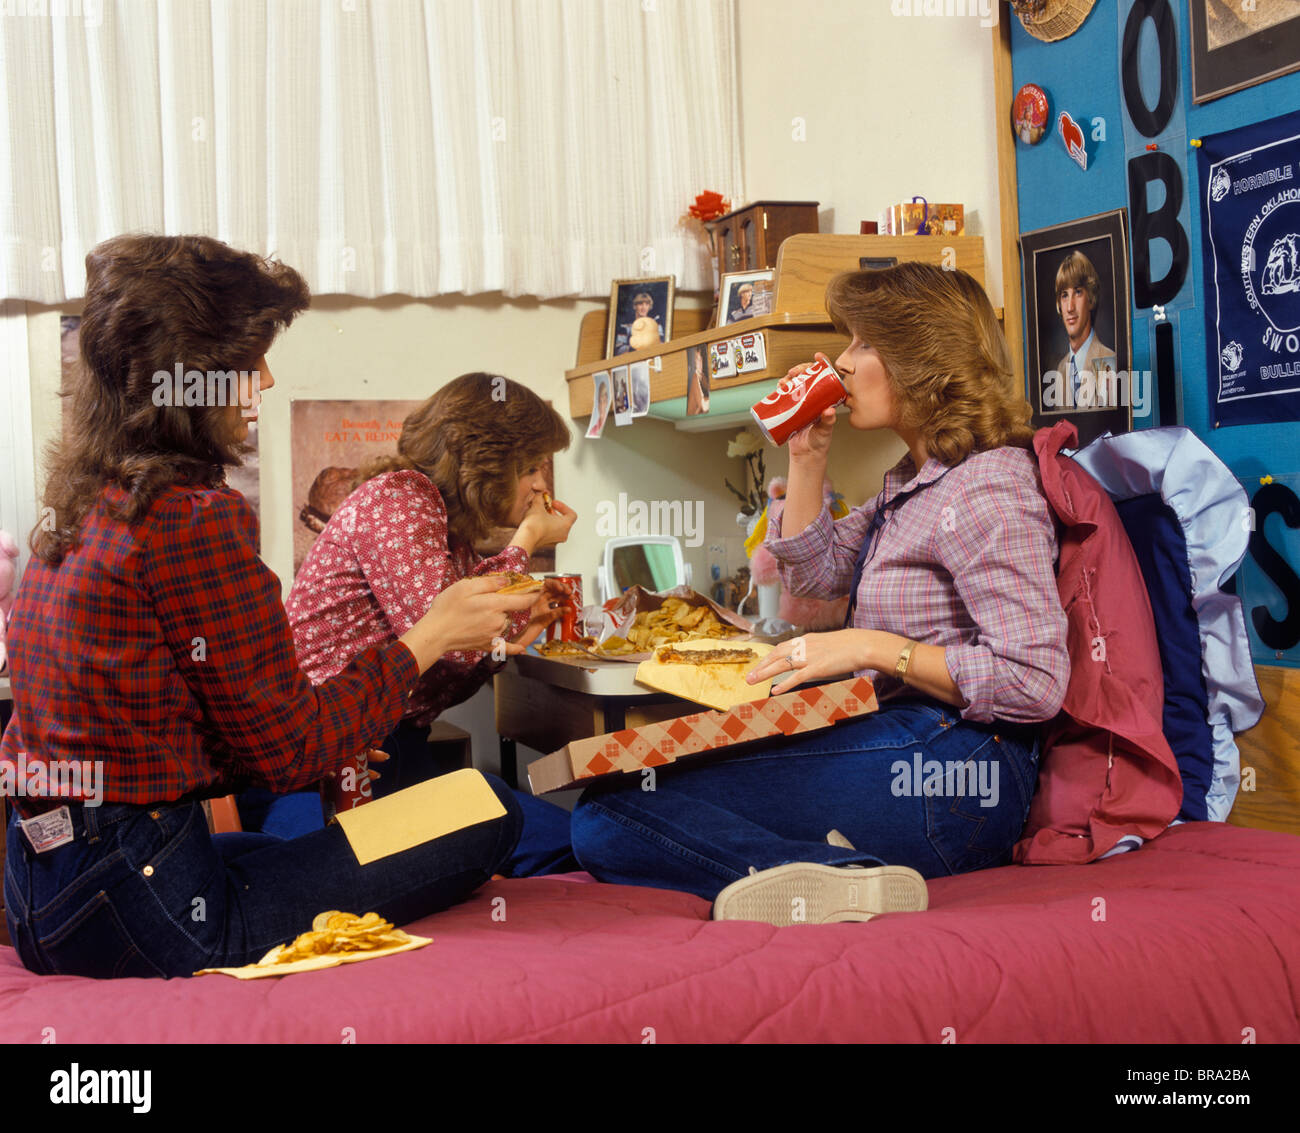 1980s THREE TEENAGE GIRLS EATING PIZZA AND FRENCH FRIES AND DRINKING CANNED SODA IN DORM ROOM Stock Photo